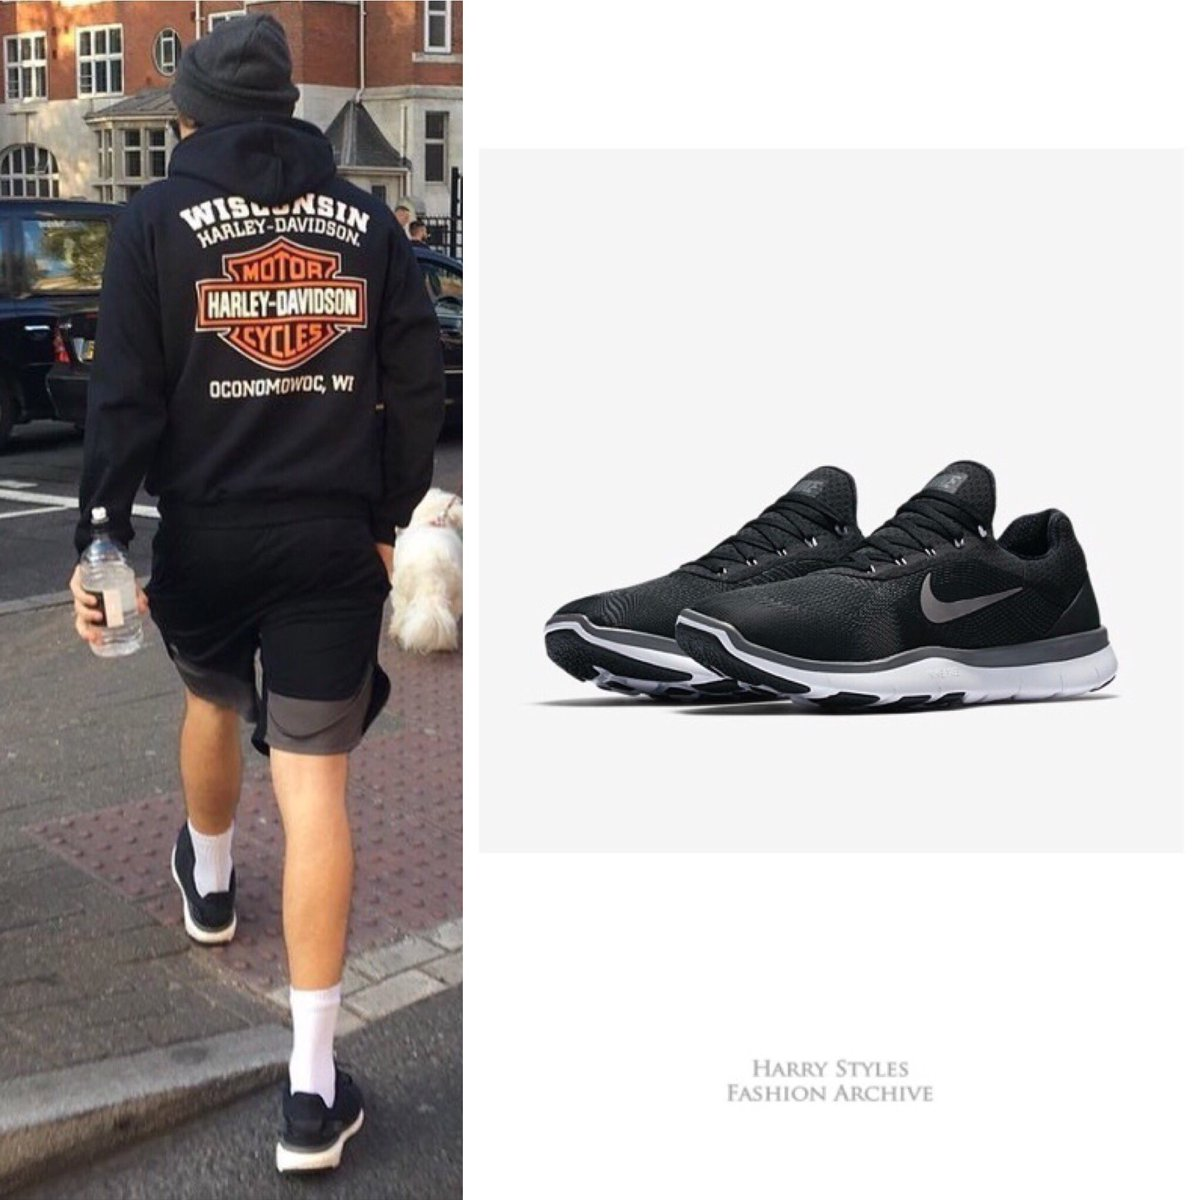 a3276874153a Harry Styles Fashion on Twitter